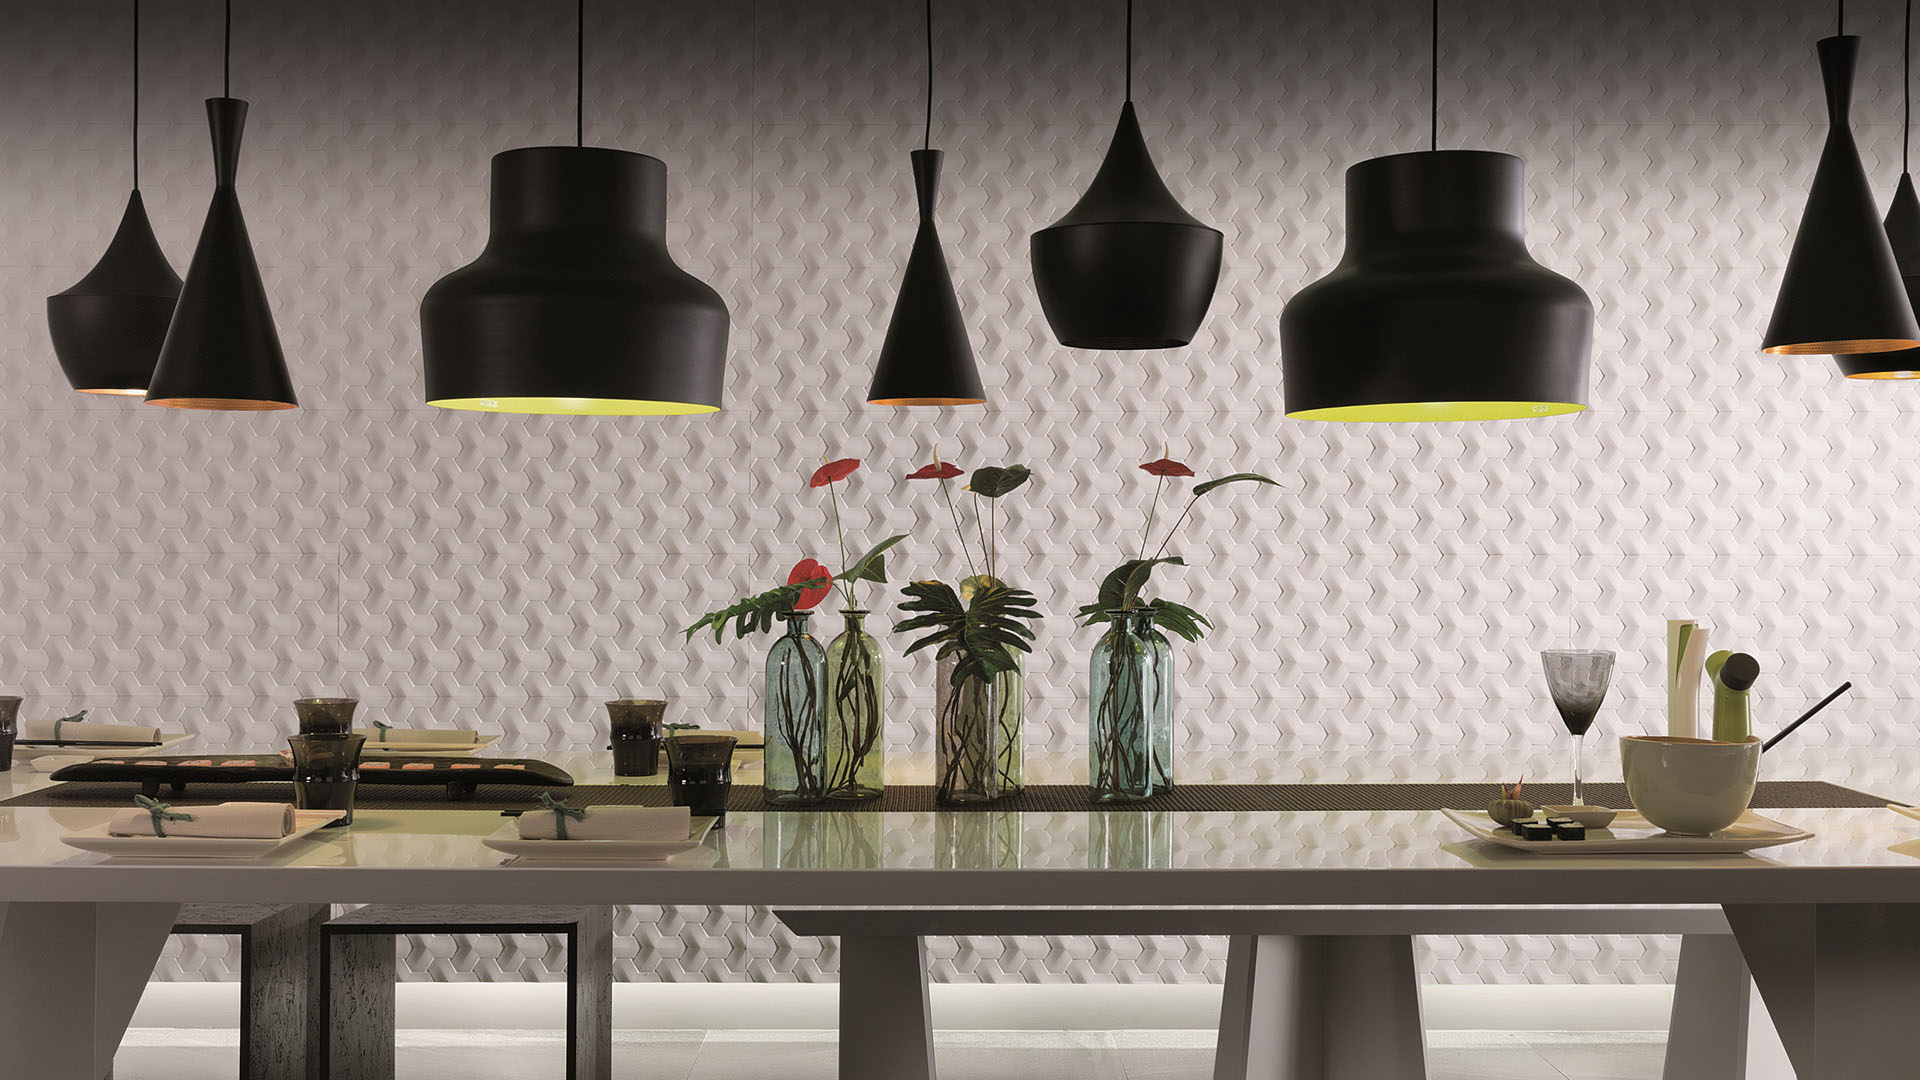 Ceramo tiles perth aims to offer the perth tile buying community ceramo tiles perth aims to offer the perth tile buying community a refreshing and innovative tile buying experience dailygadgetfo Choice Image